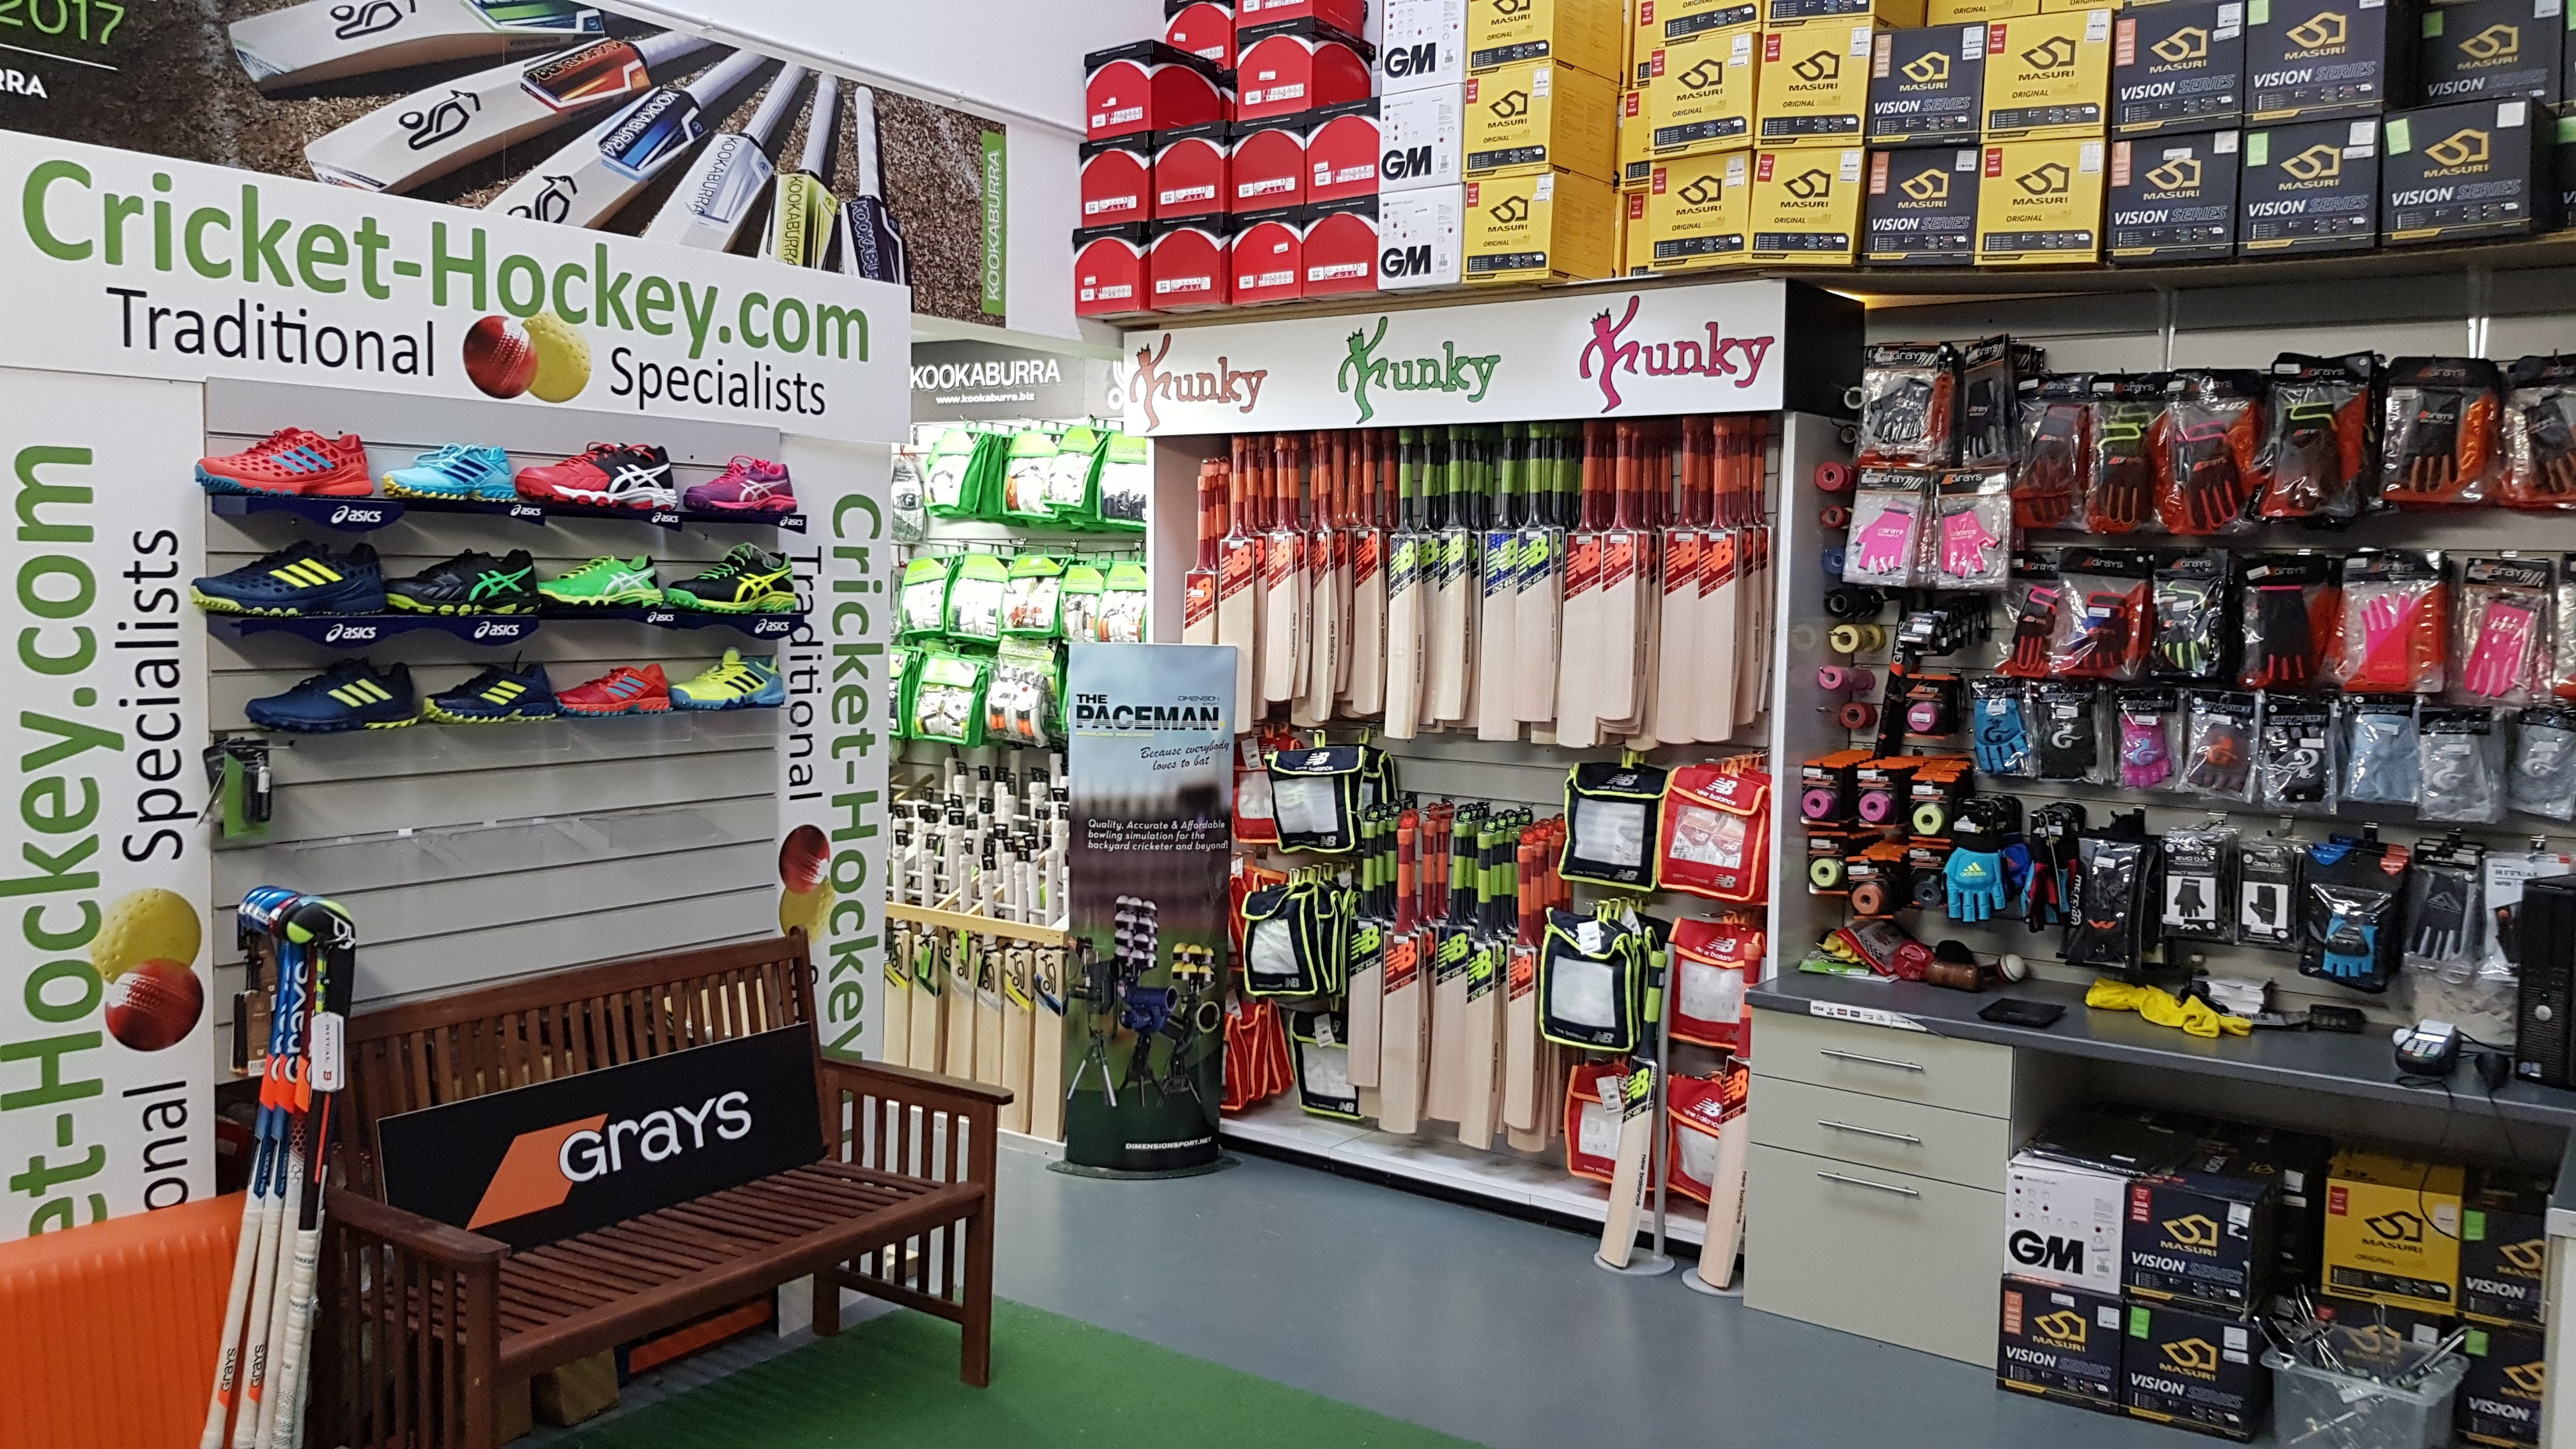 Cricket-Hockey Showroom